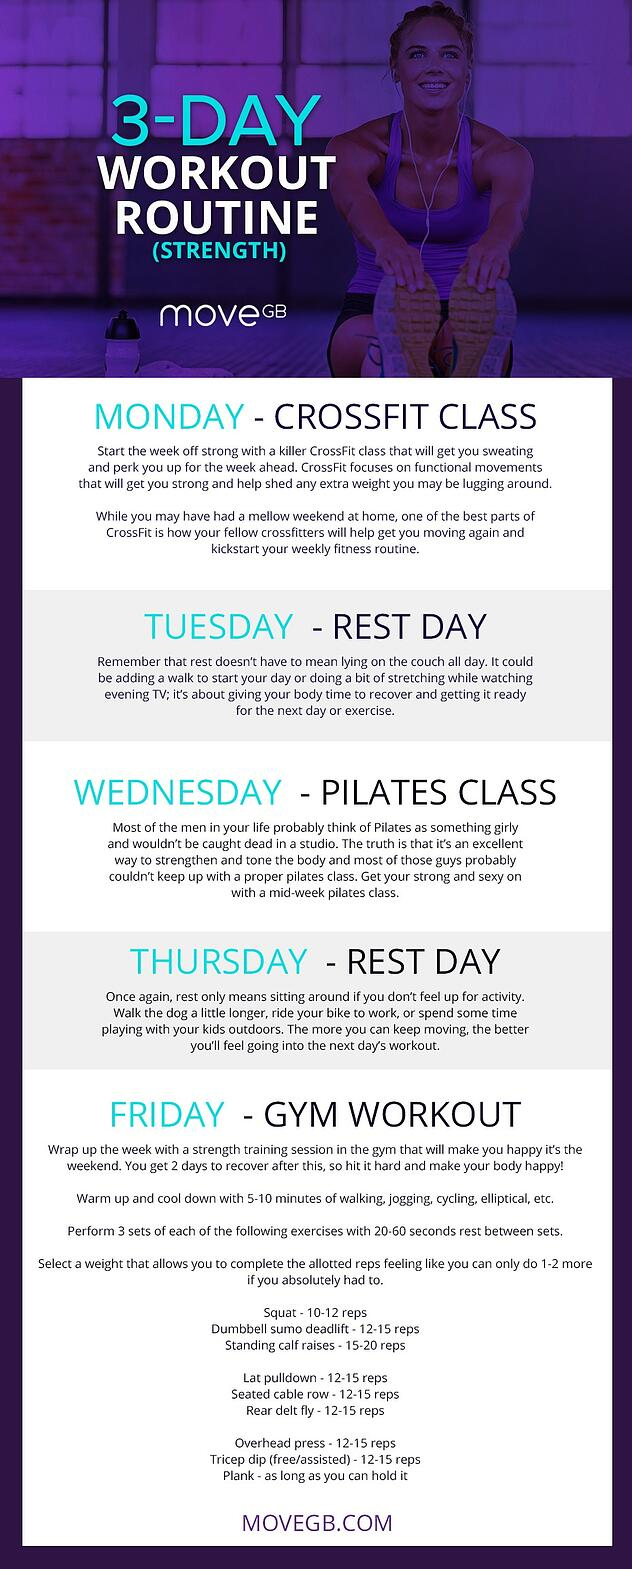 3-Day Workout Routine for Women